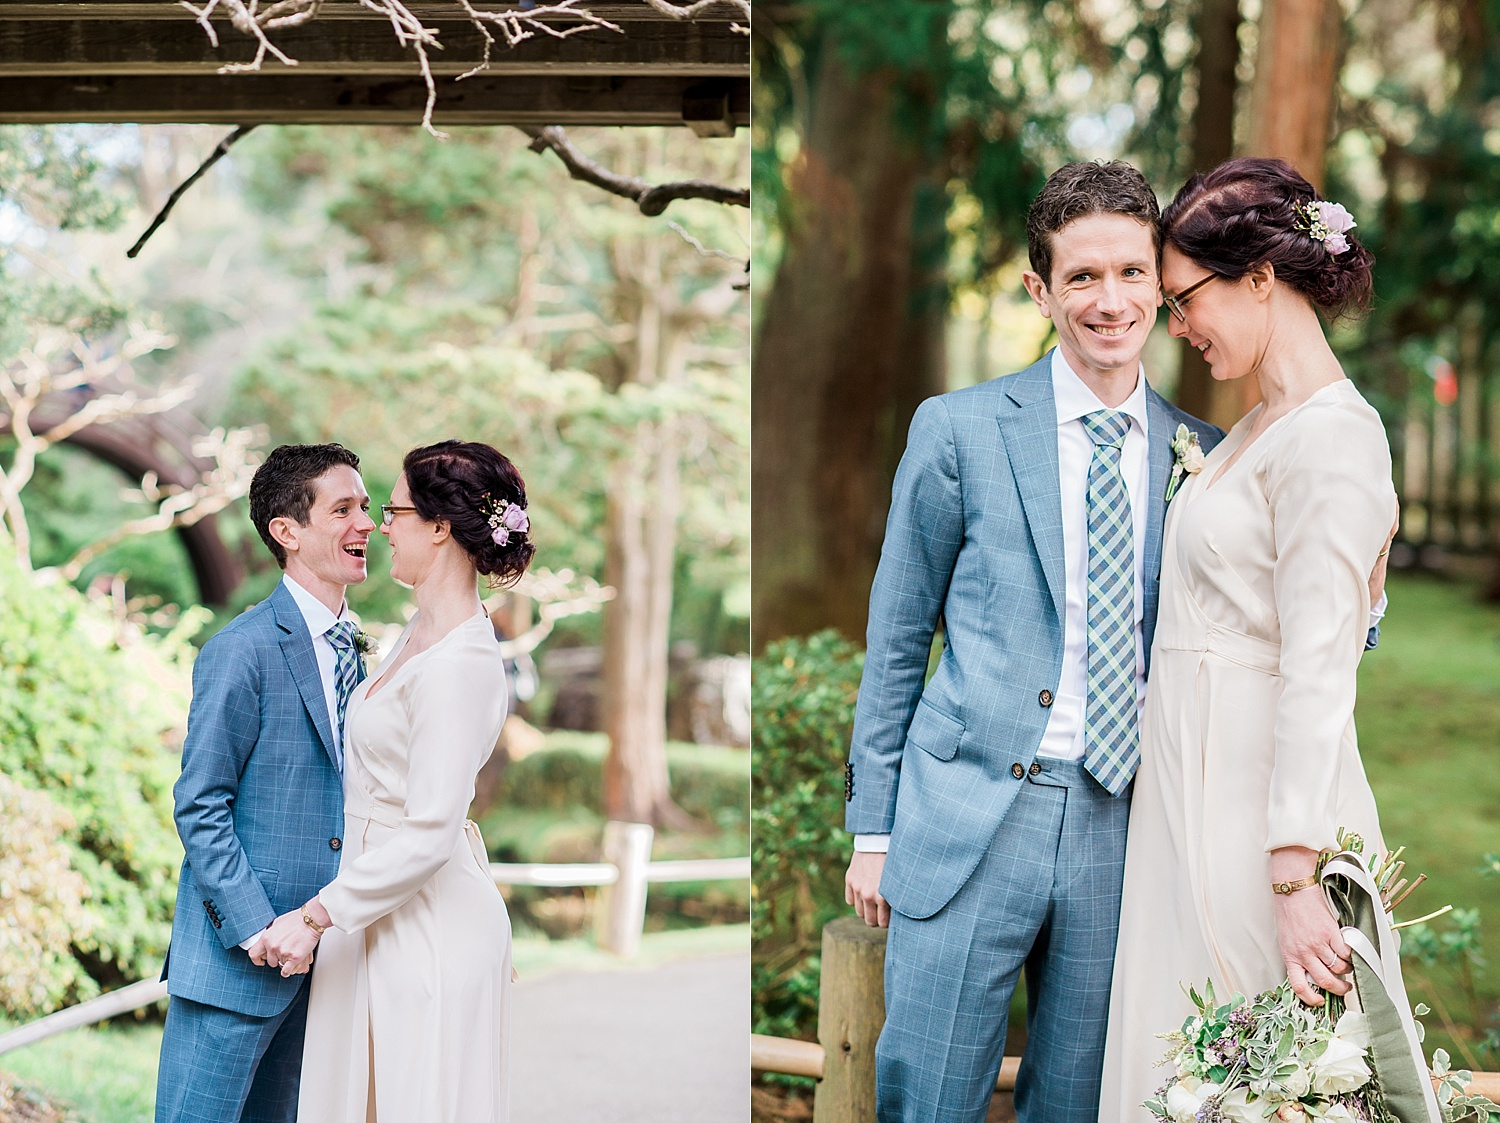 jennifer-jayn-photography-san-francisco-japanese-tea-garden-elopement_0031.jpg